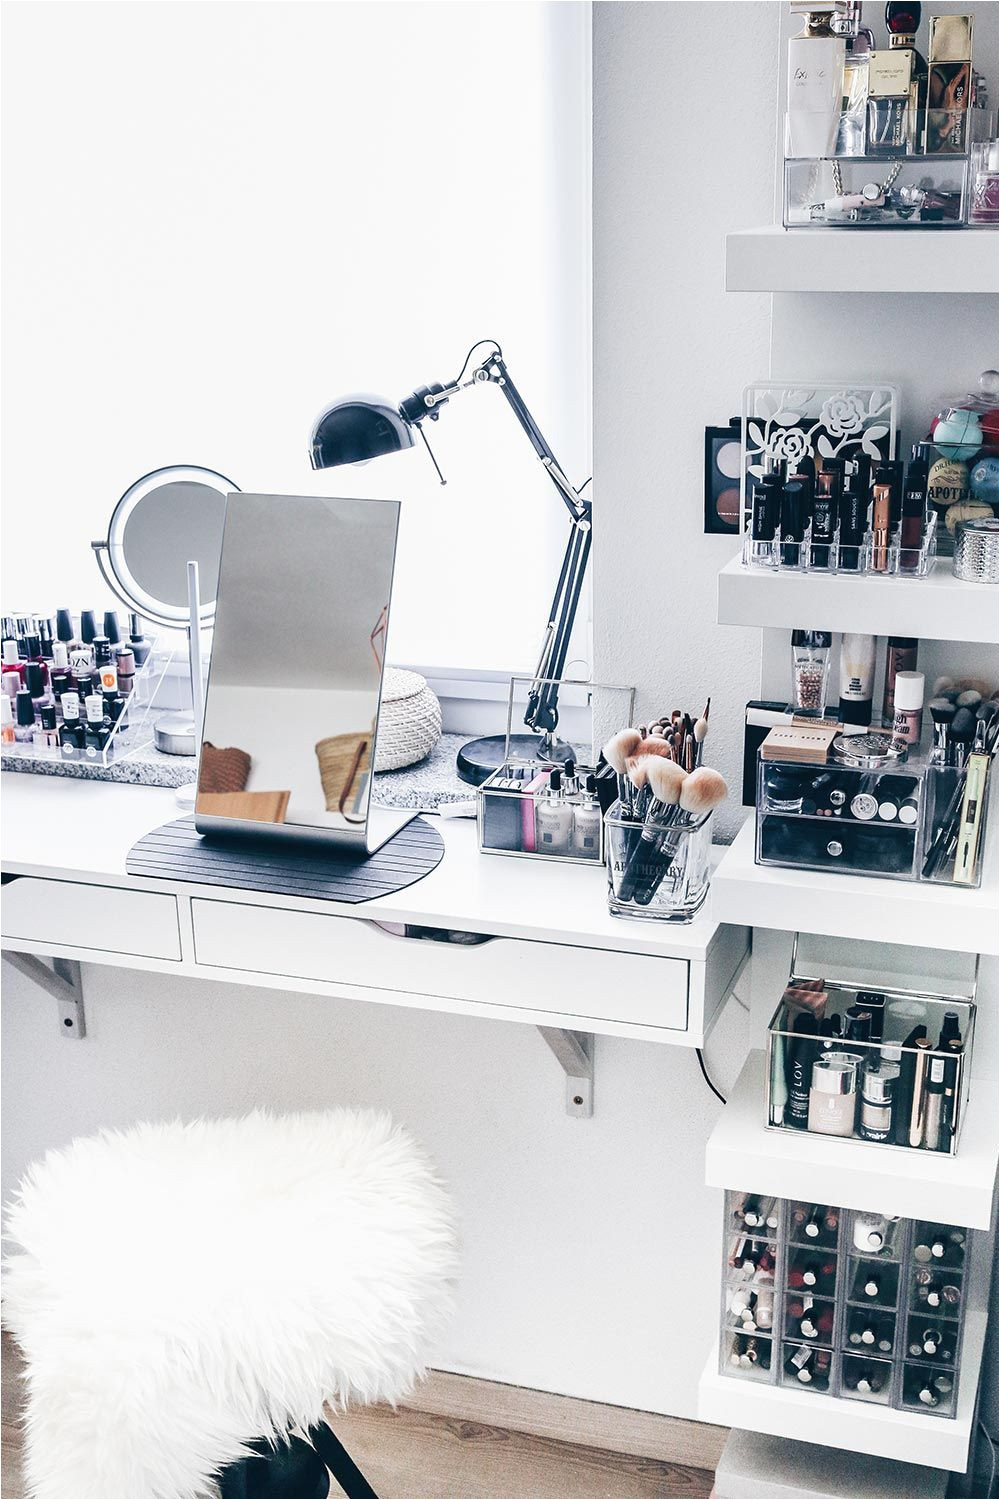 the ikea storage things on the wall you then put just a bunch of acrylic things from the dollar store and fill them with makeup